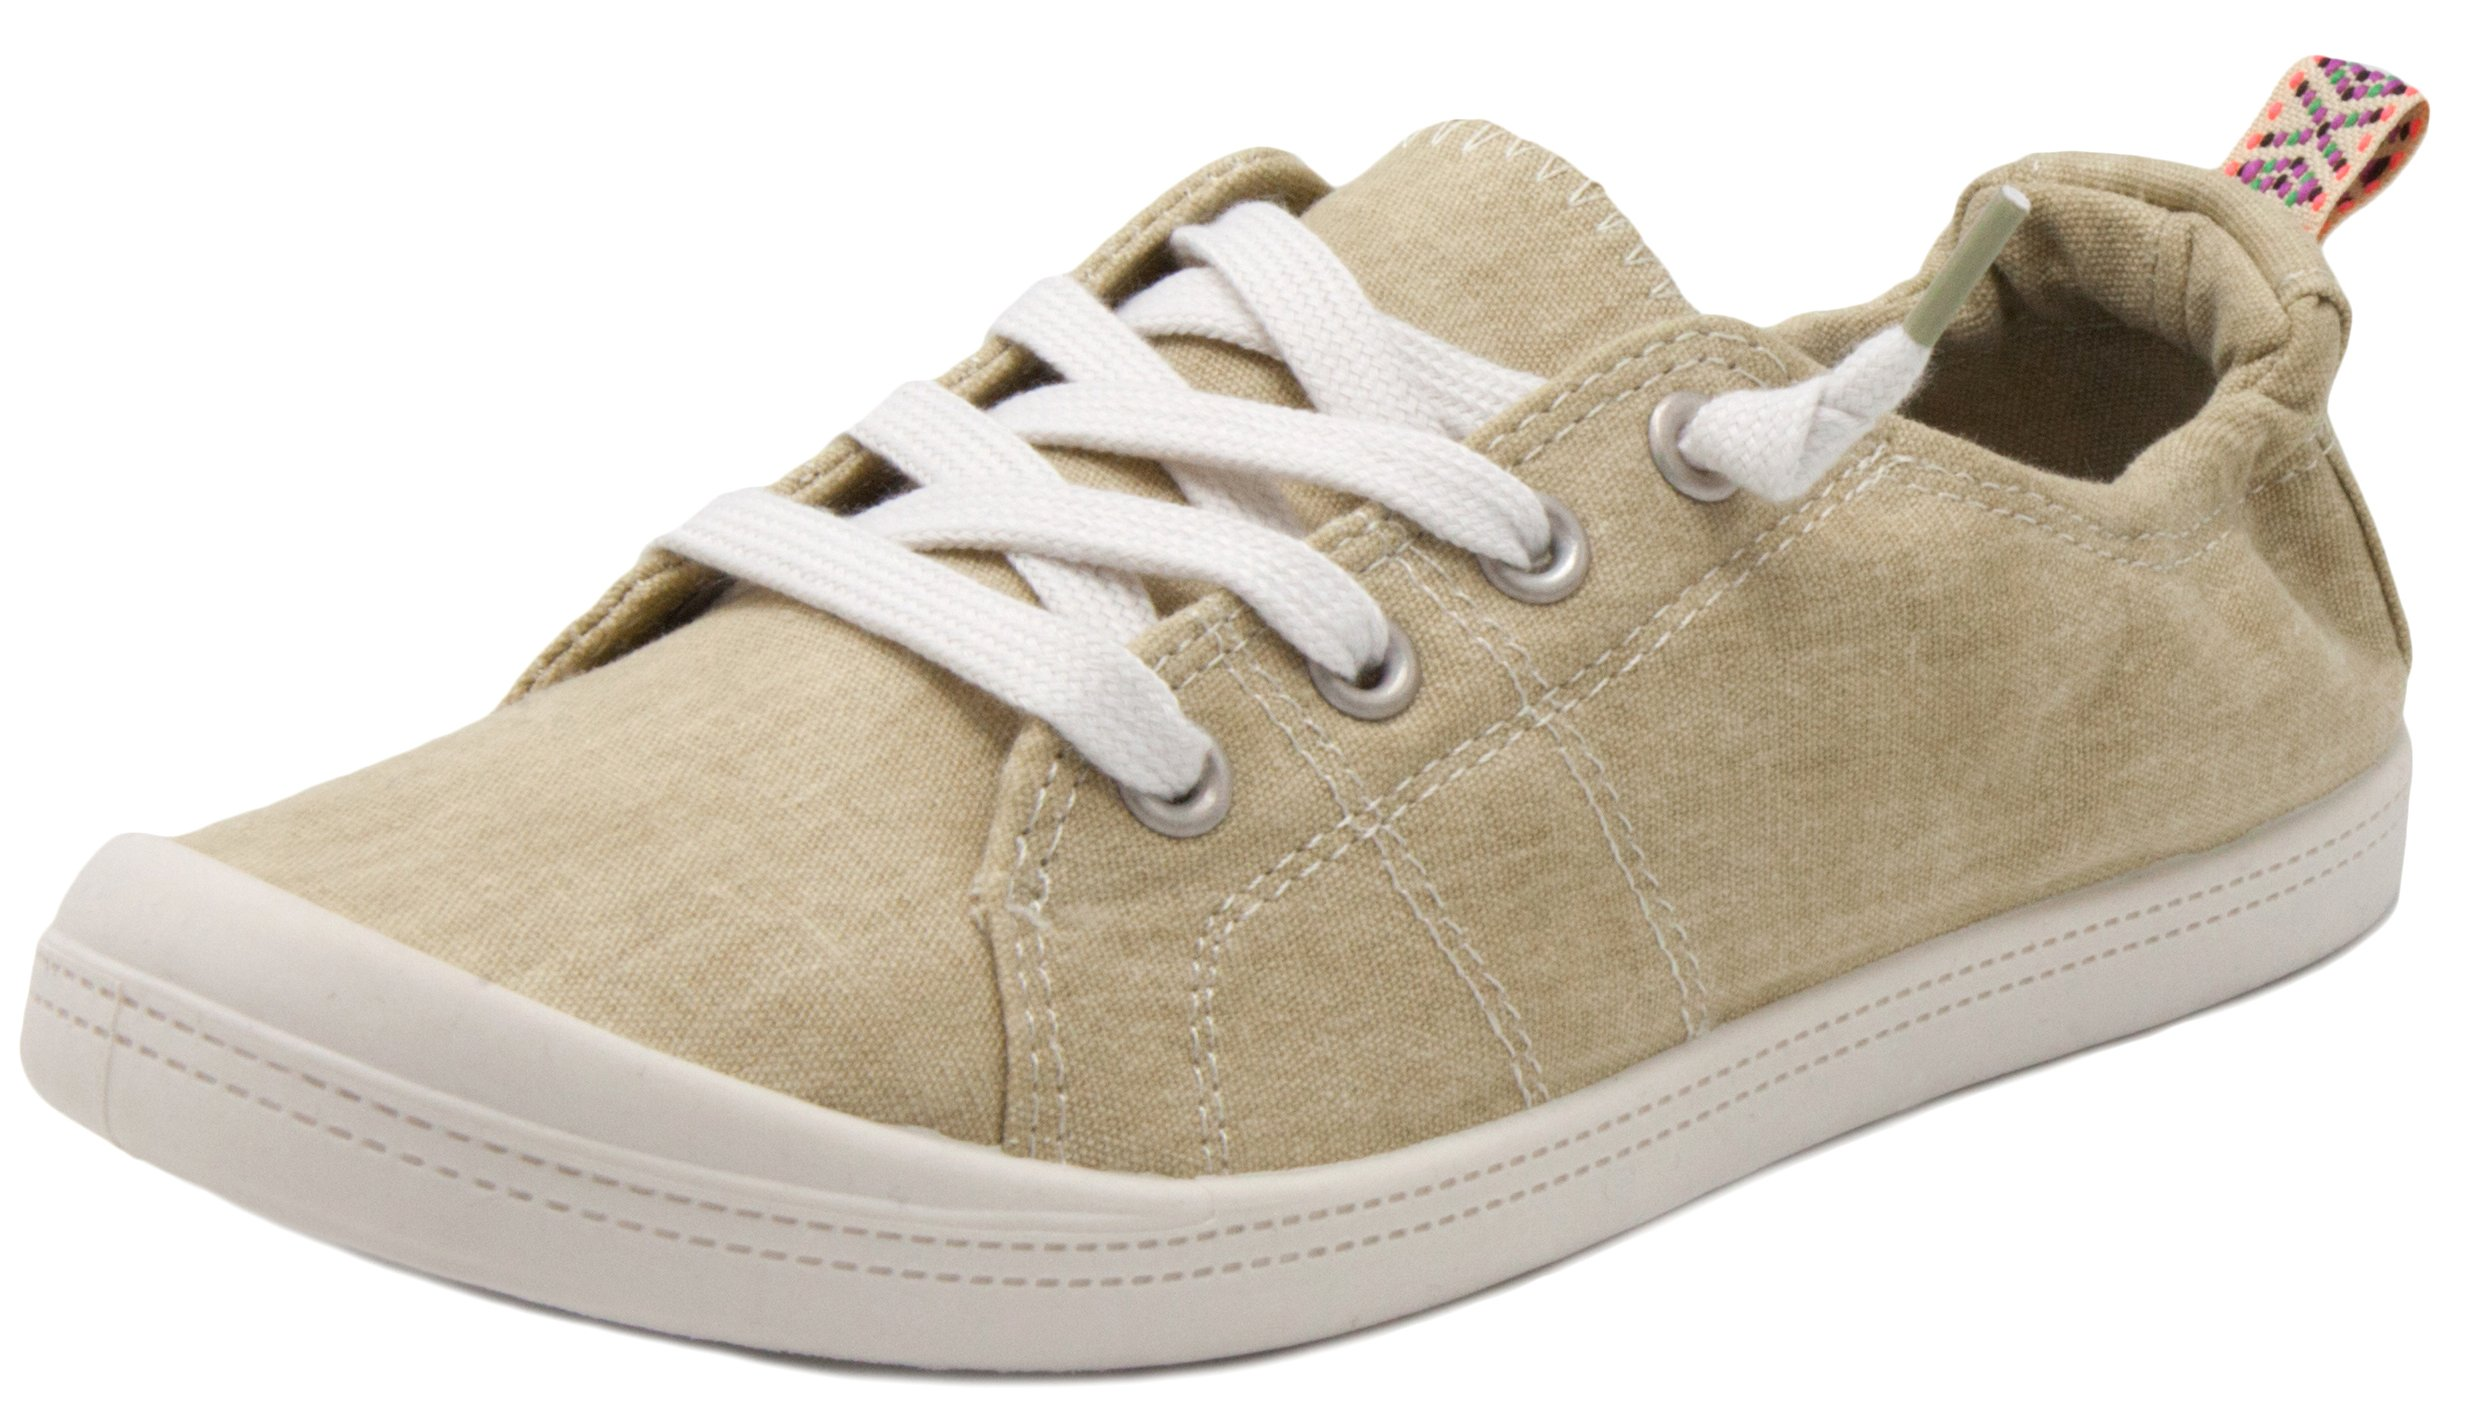 Rampage Women's Grateful Comfortable Slip On Sneaker Shoe with No-Tie Laces and Cute Design 8 Natural Wash Cotton